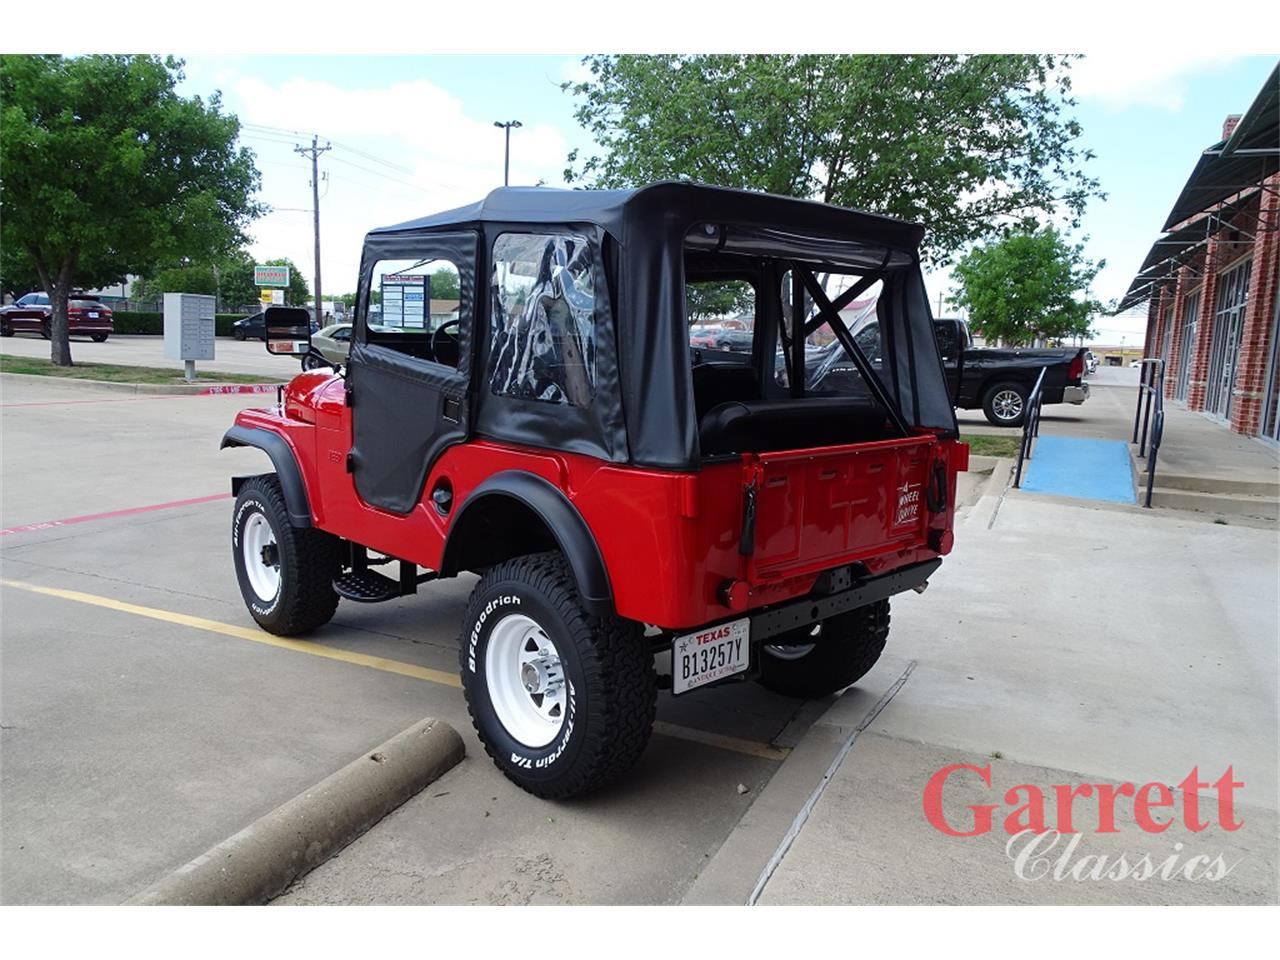 Large Picture of Classic '64 Willys Jeep located in TEXAS (TX) - $16,500.00 - Q4KI